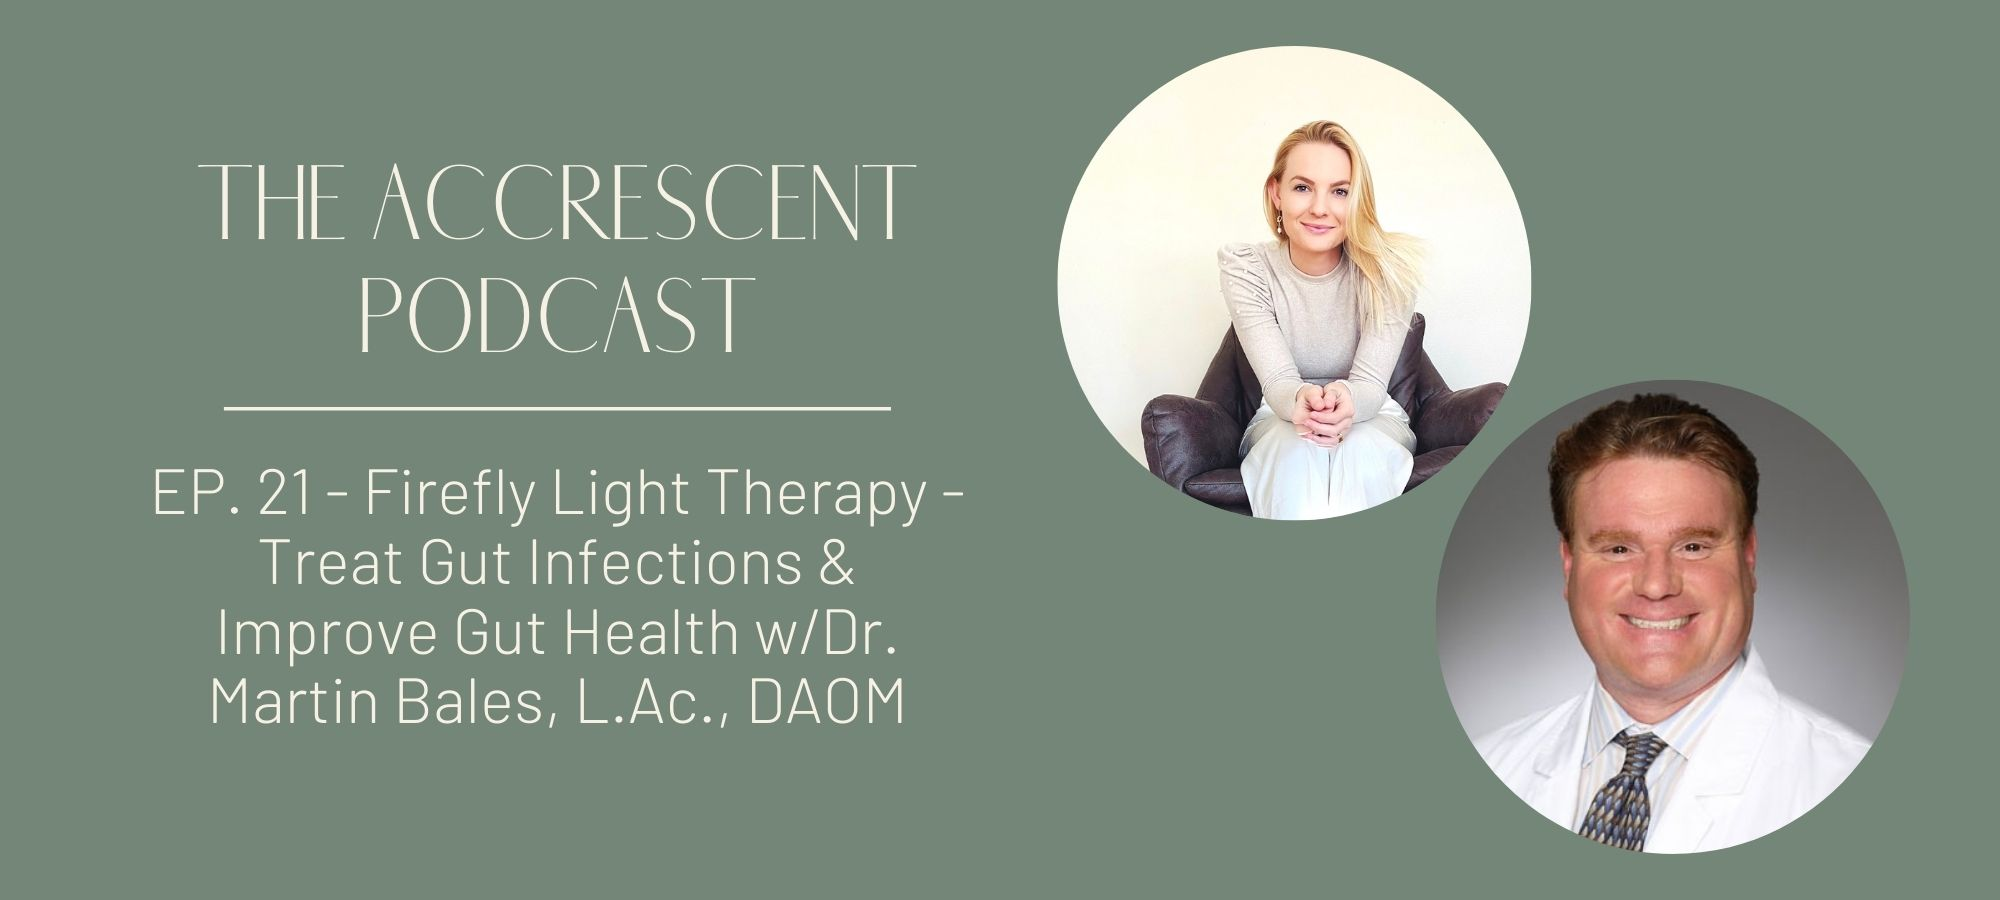 Accrescent Podcast Ep. 21 Firefly Light Therapy - Treat Gut Infections & Improve Gut Health w/Dr. Martin Bales, L.Ac., DAOM